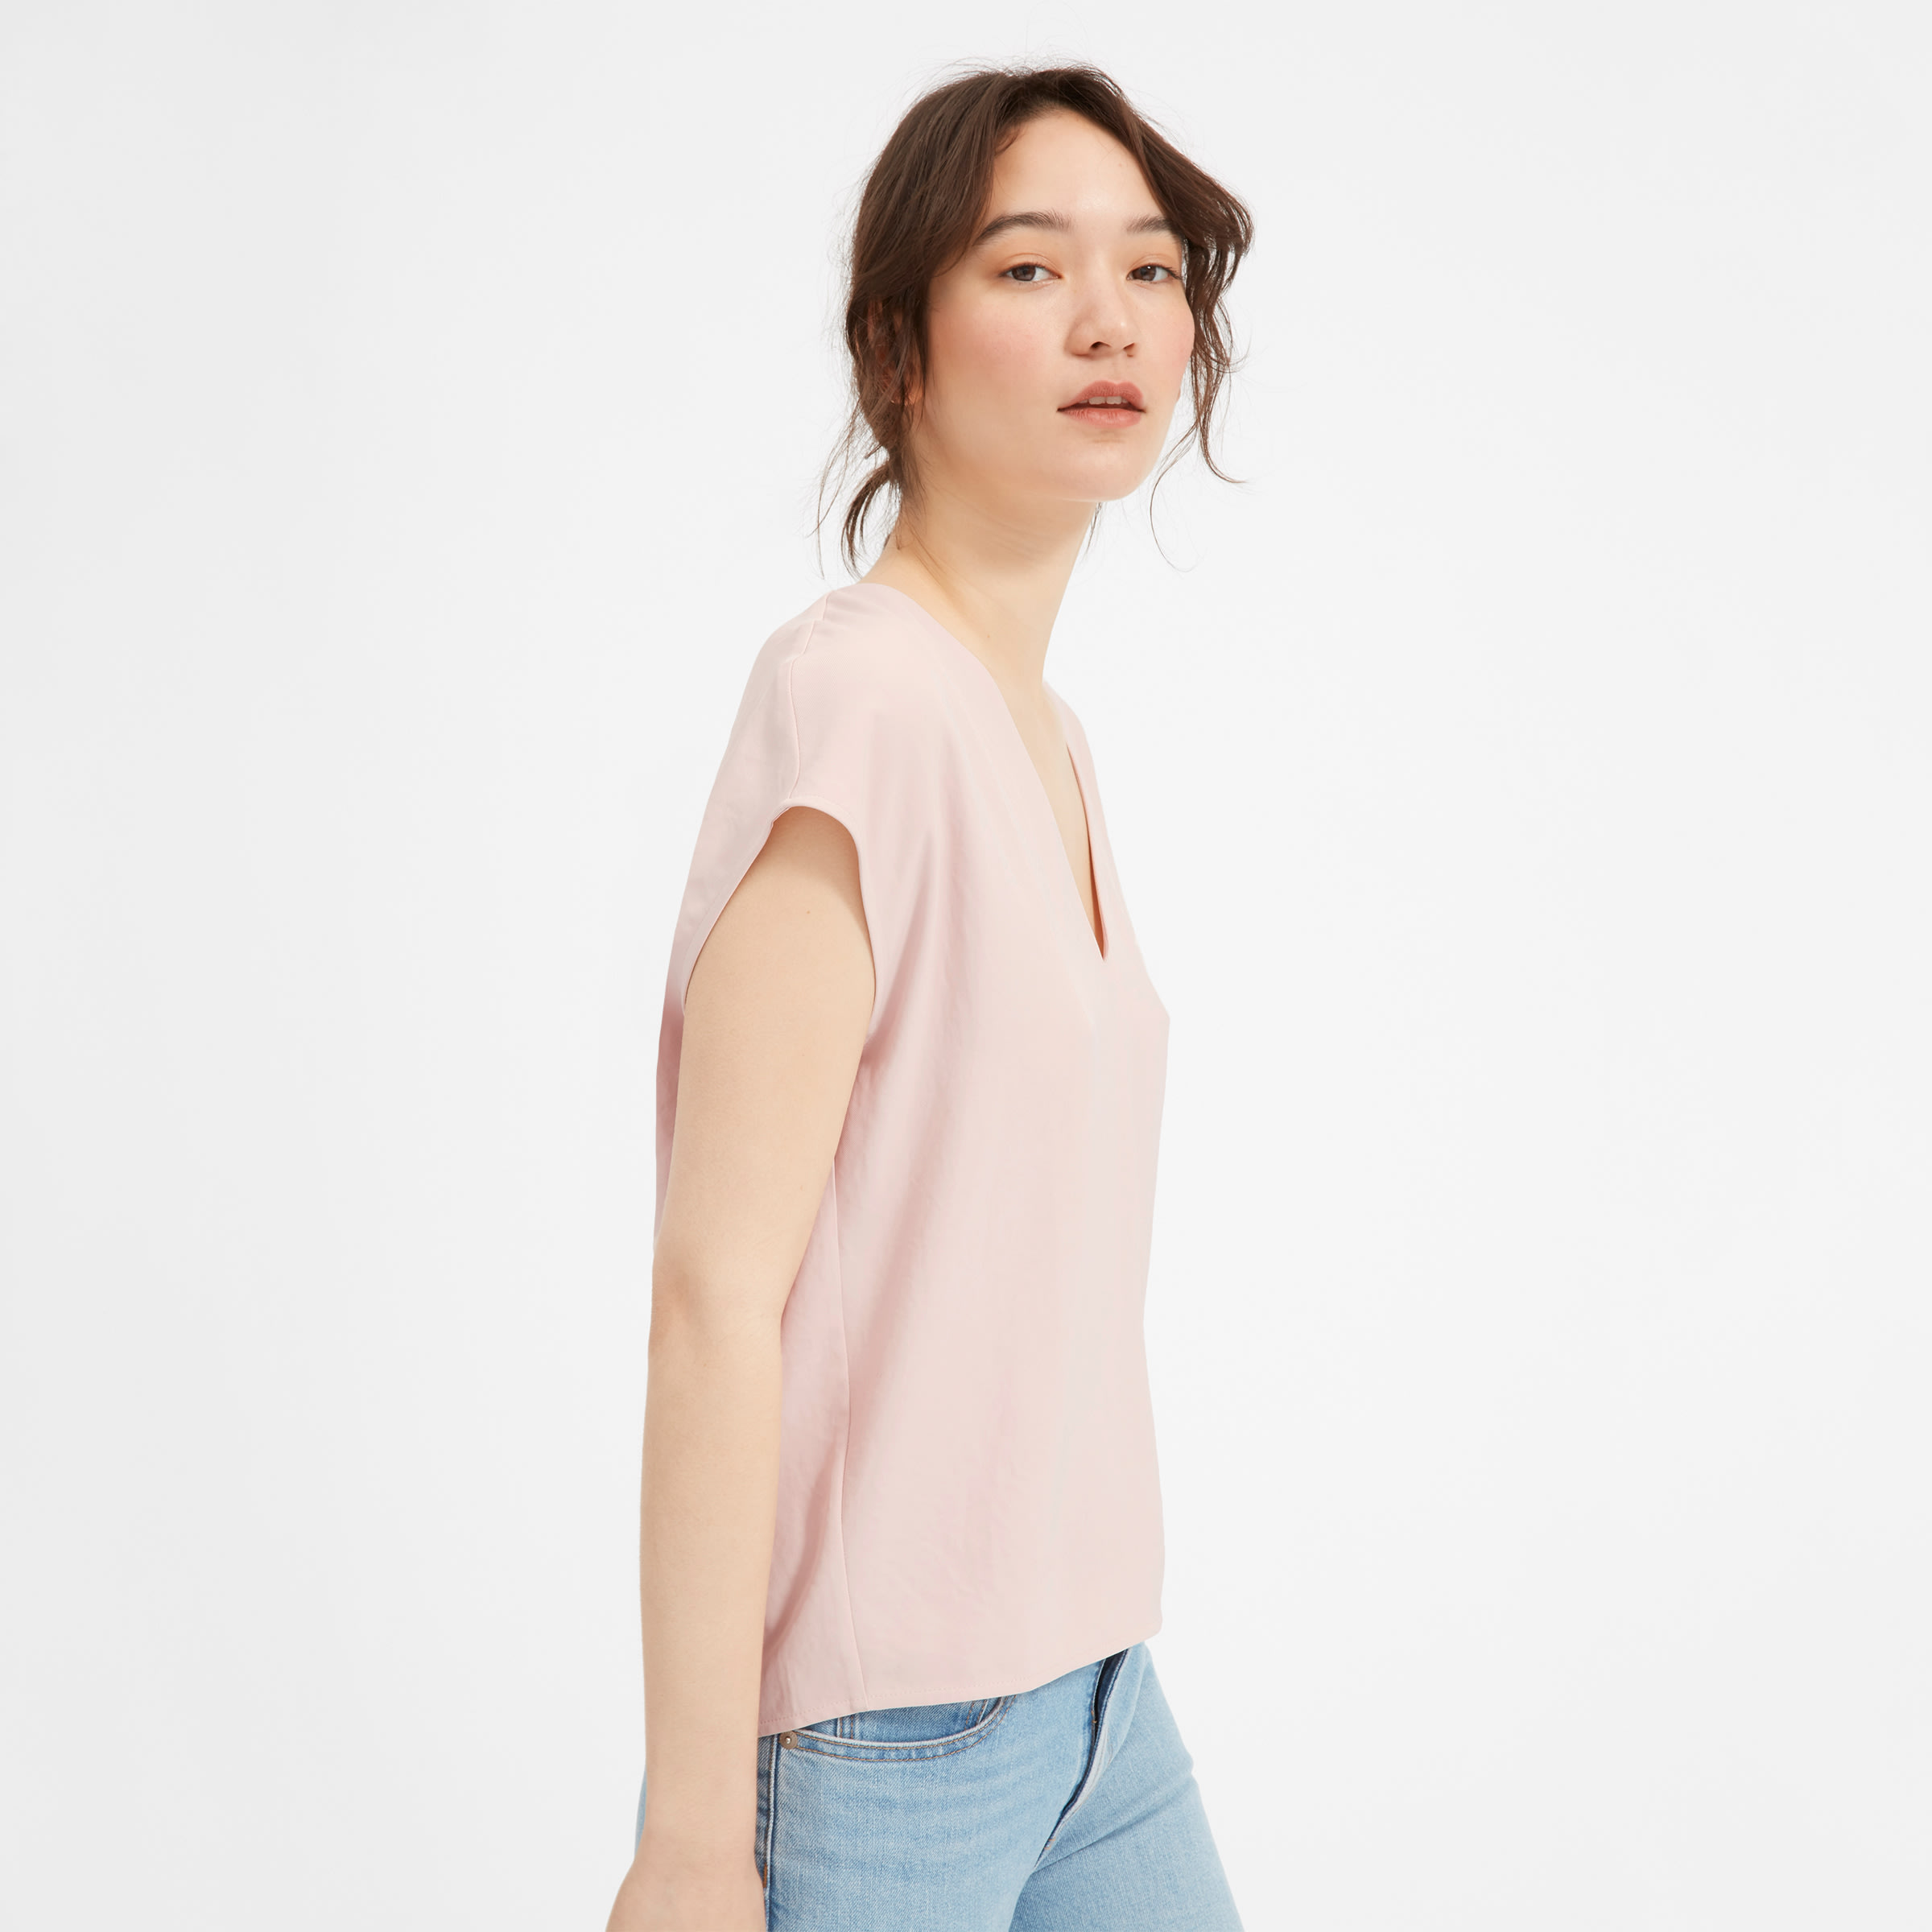 The Japanese Go Weave V Neck Tee by Everlane